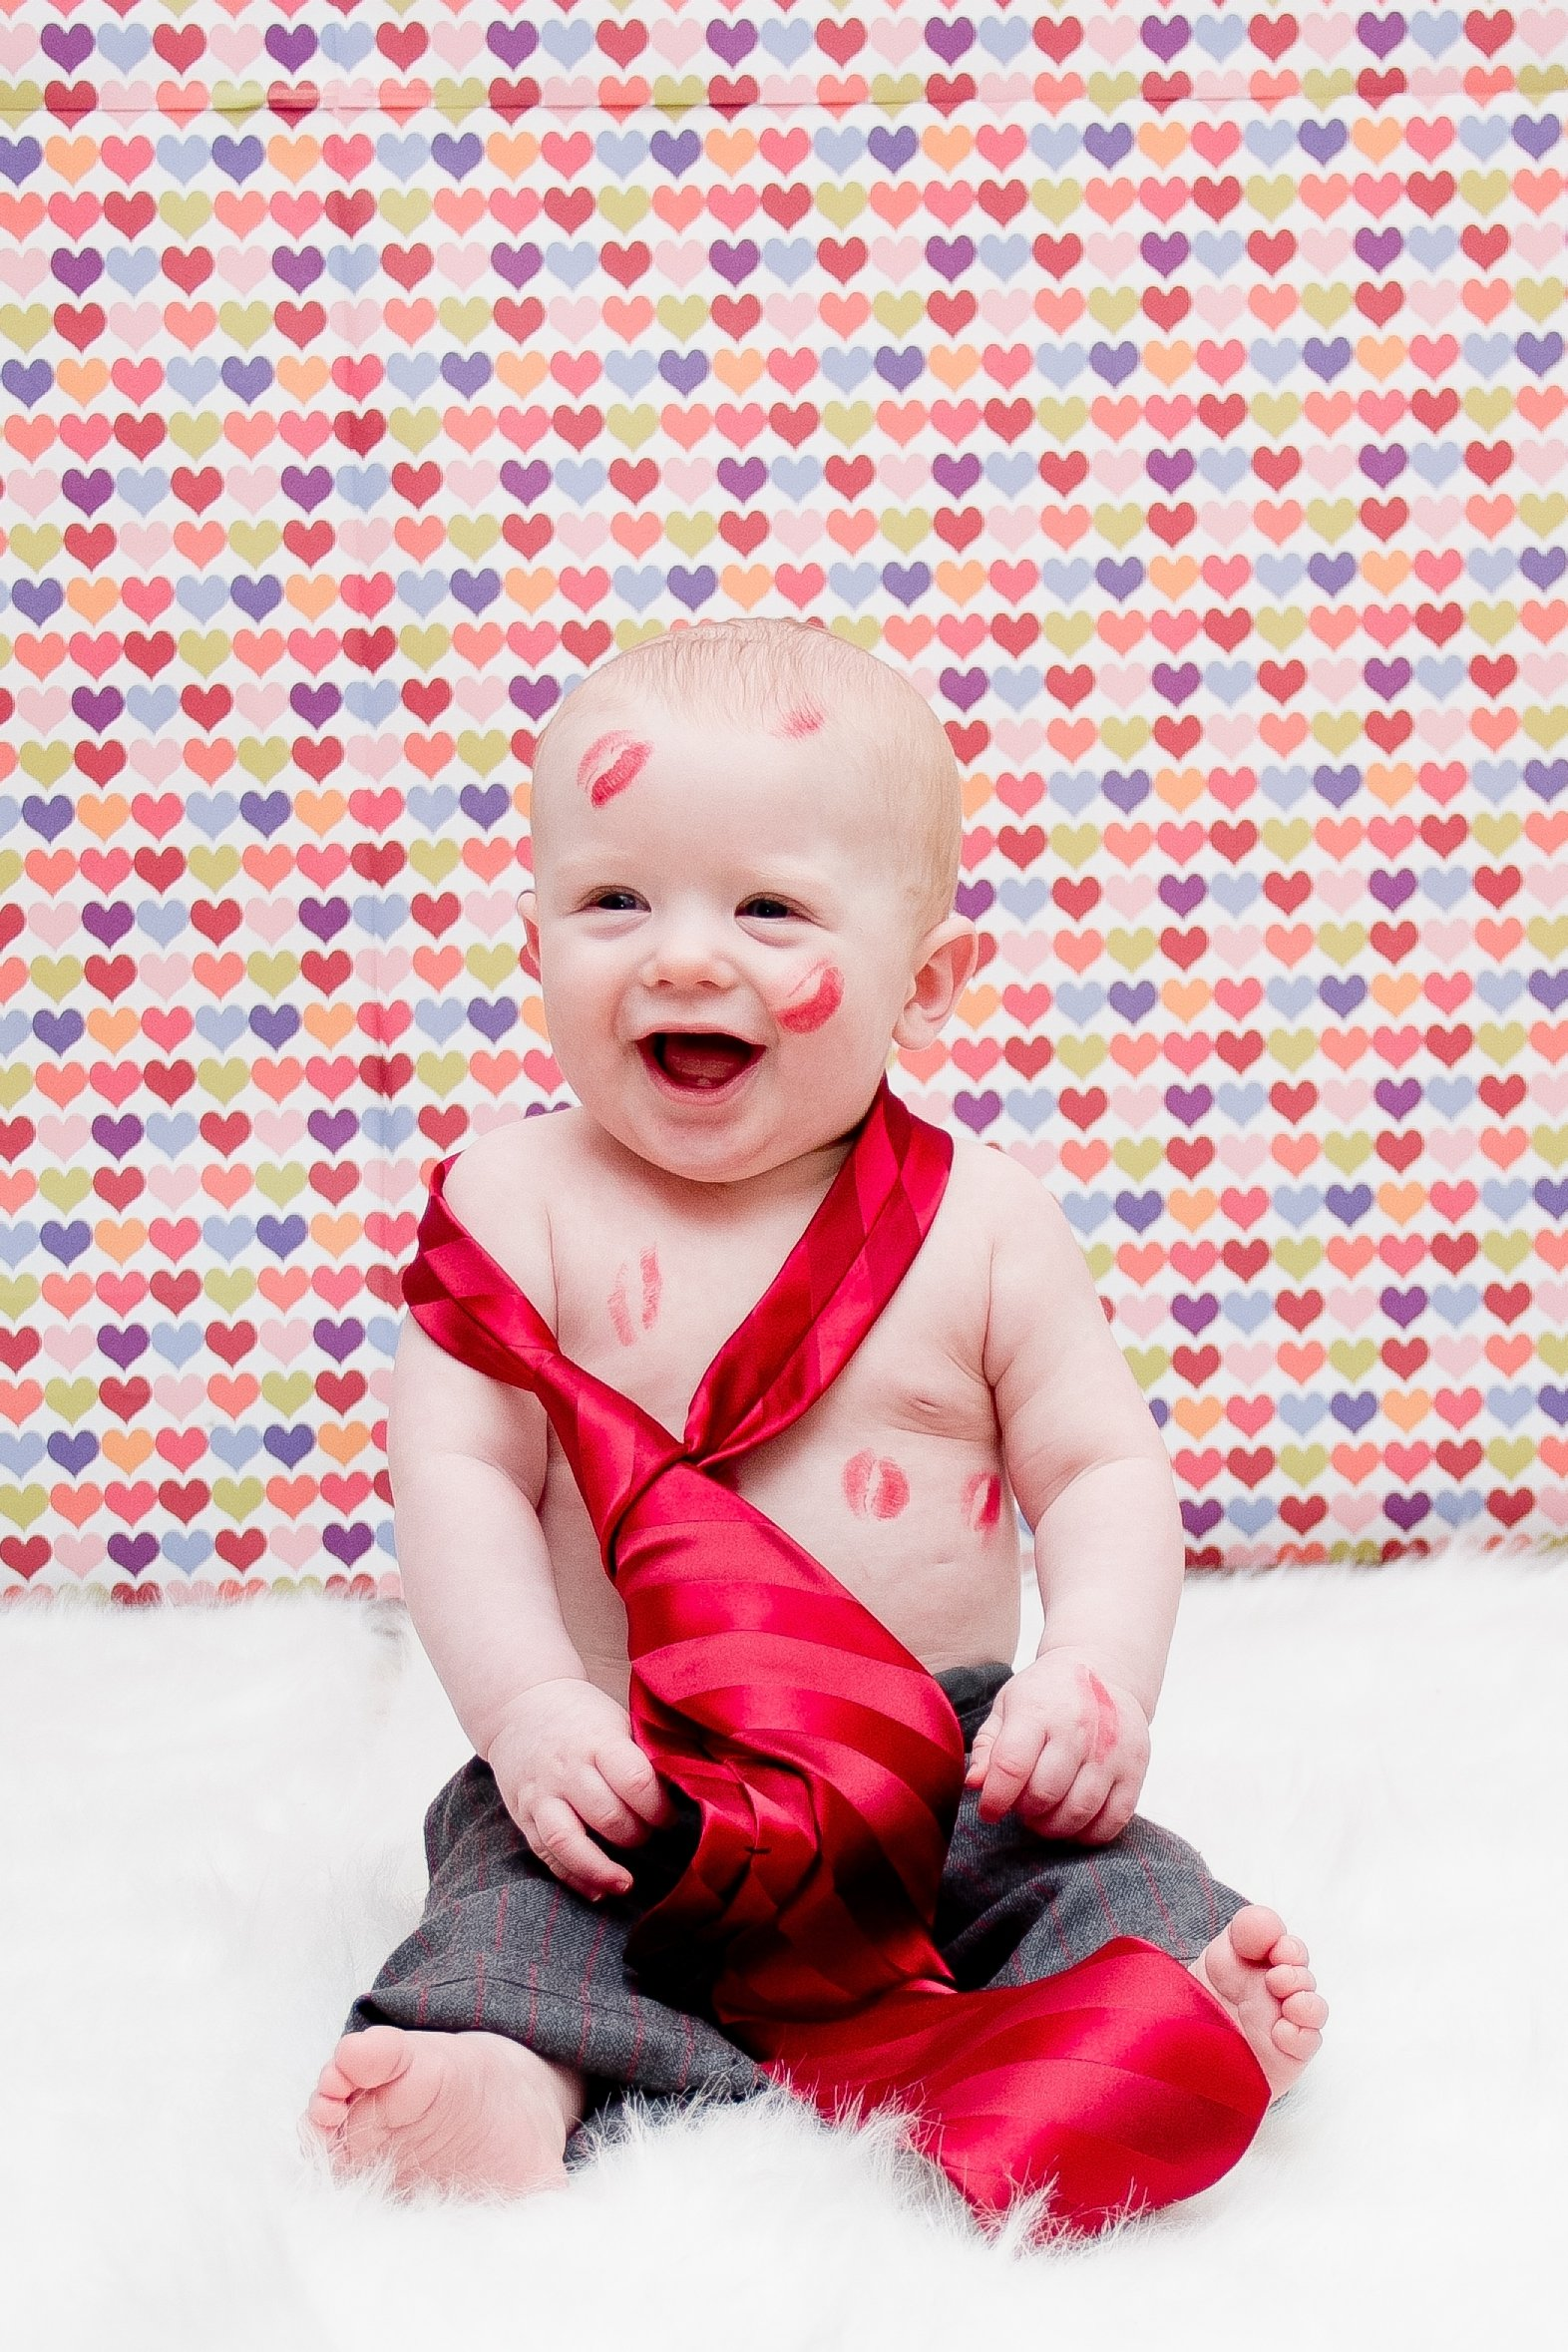 10 Fantastic Valentine Day Baby Photo Ideas 10 cute valentines day baby pictures babies baby photos and baby 2020